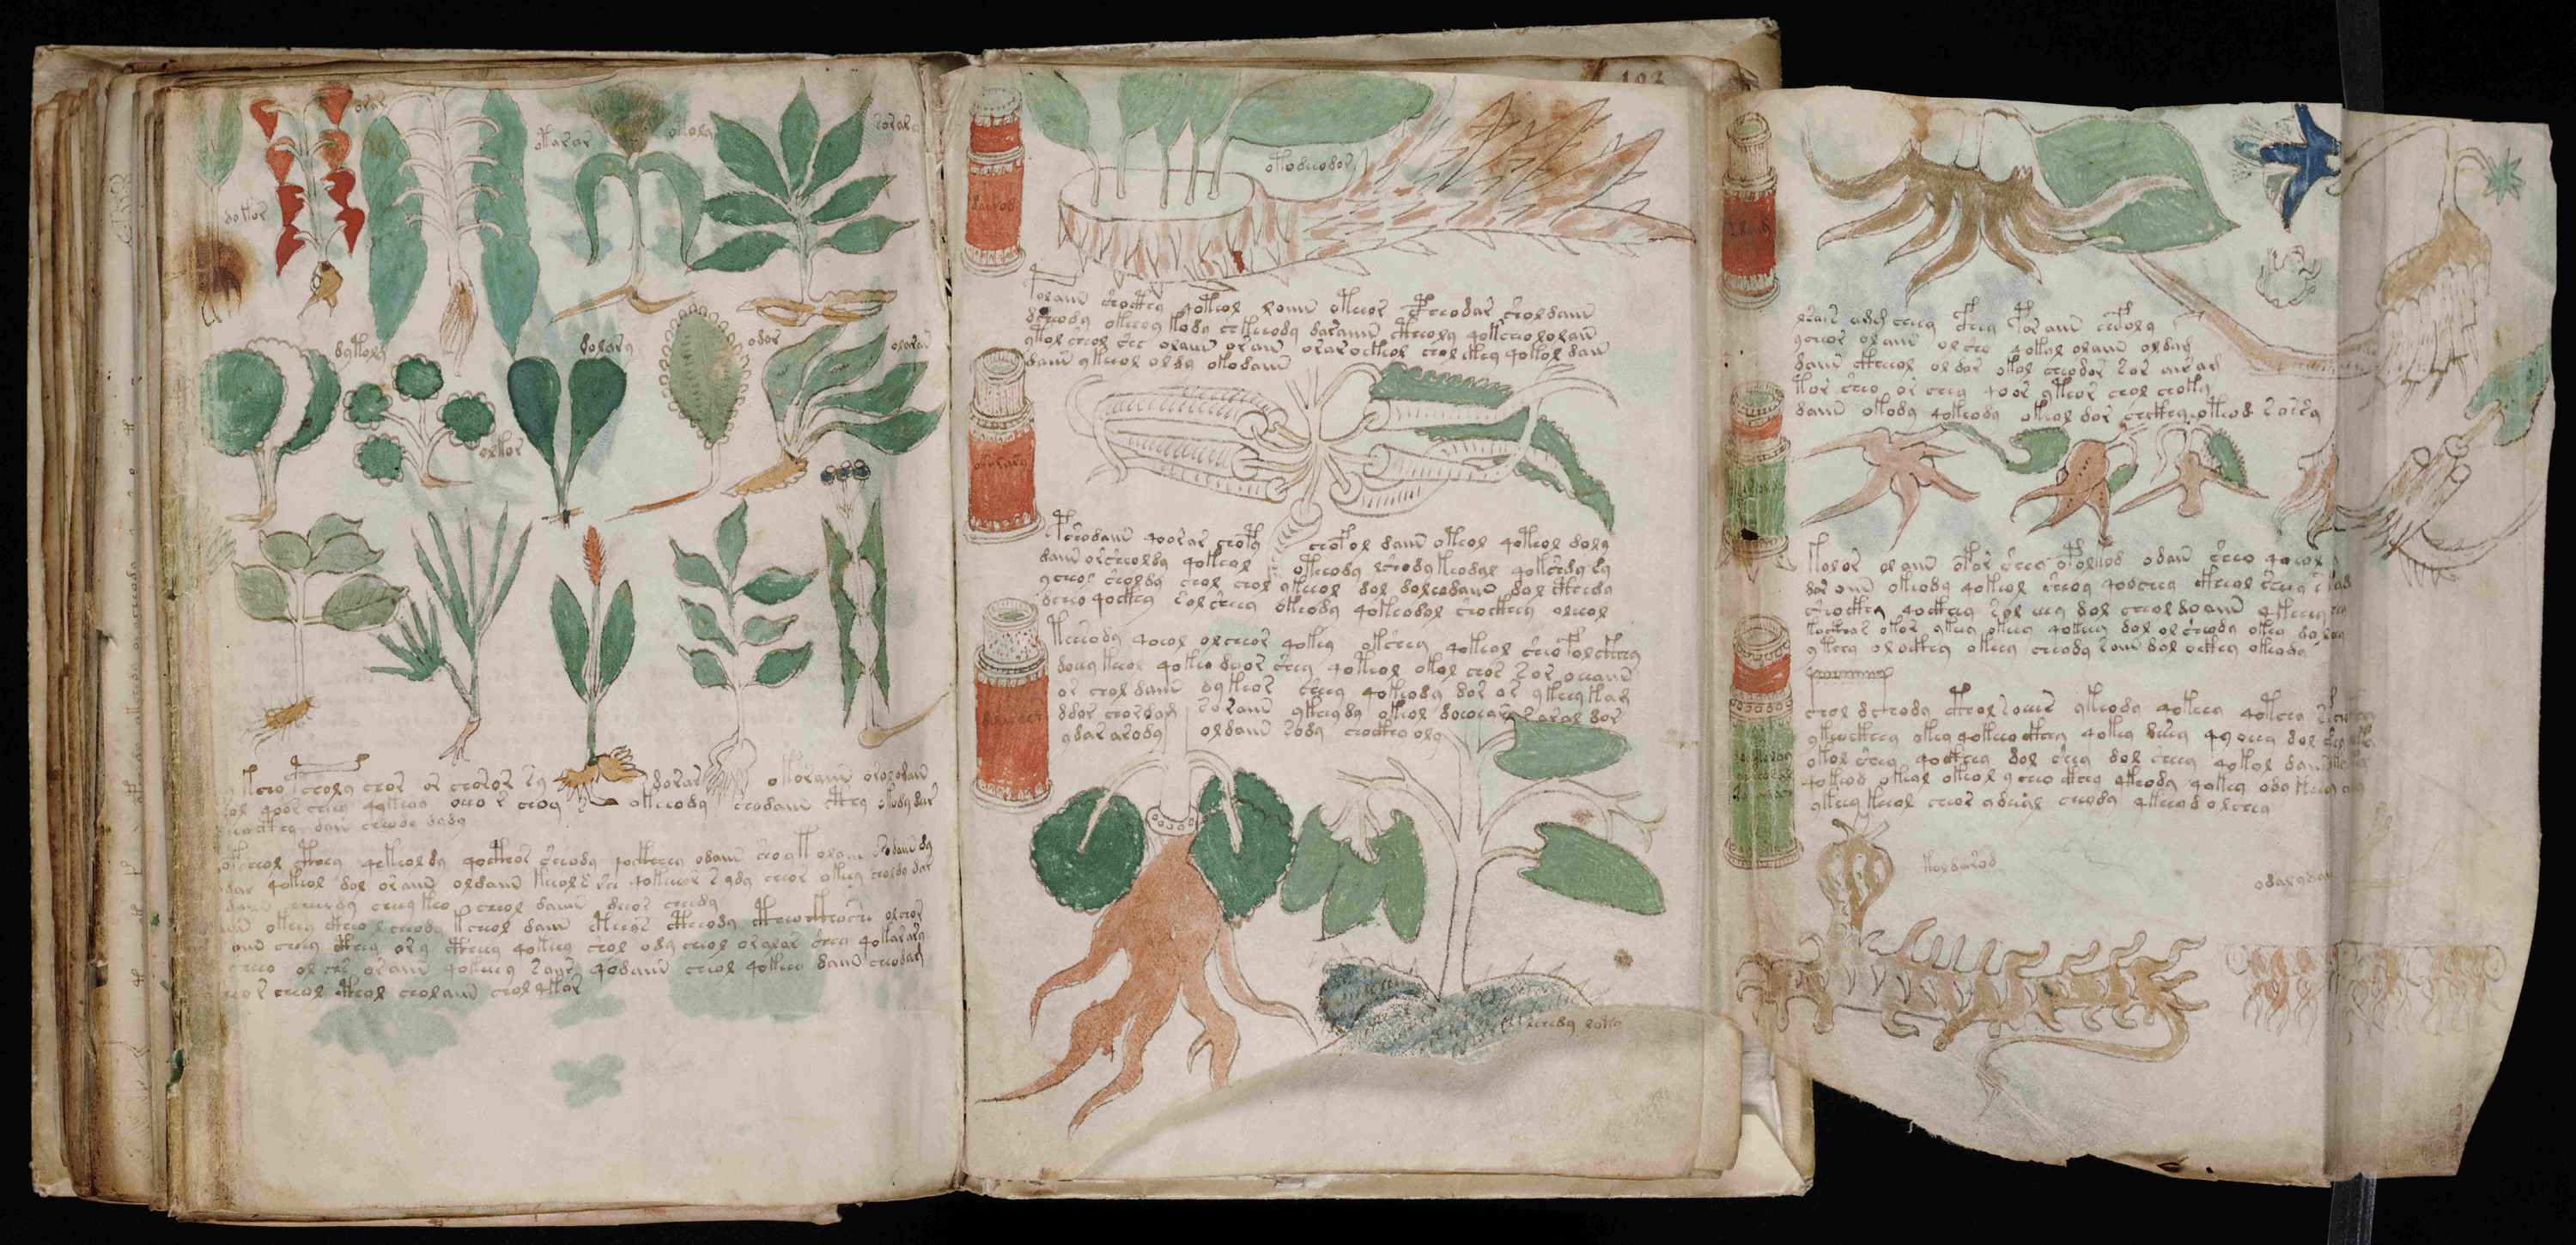 http://www.thehistoryblog.com/wp-content/uploads/2011/02/Voynich2.png